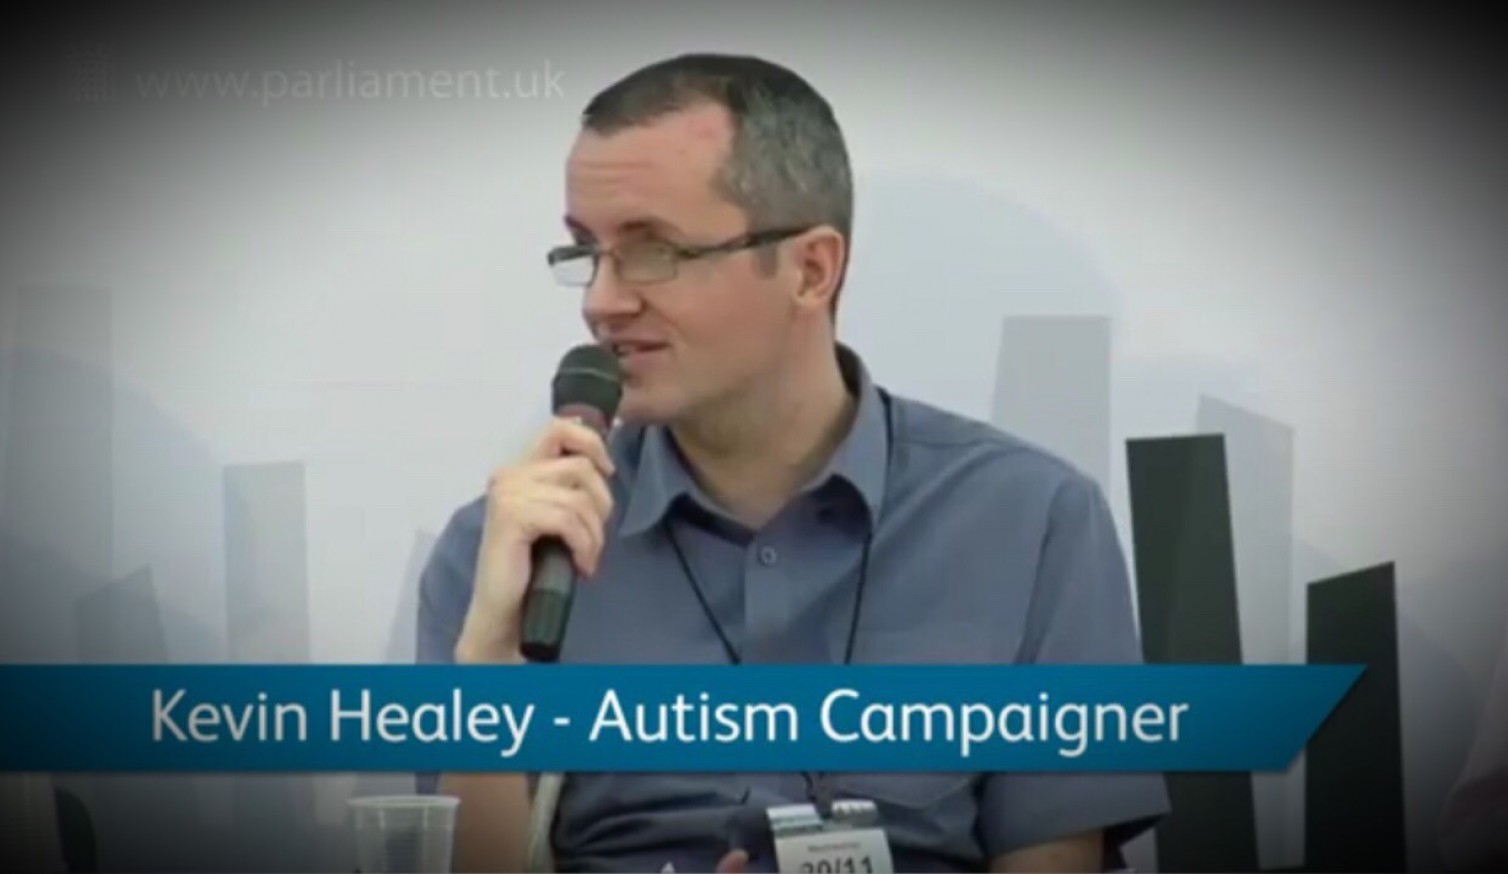 Autism Campaigner calling for Action on Social Media Giants Twitter